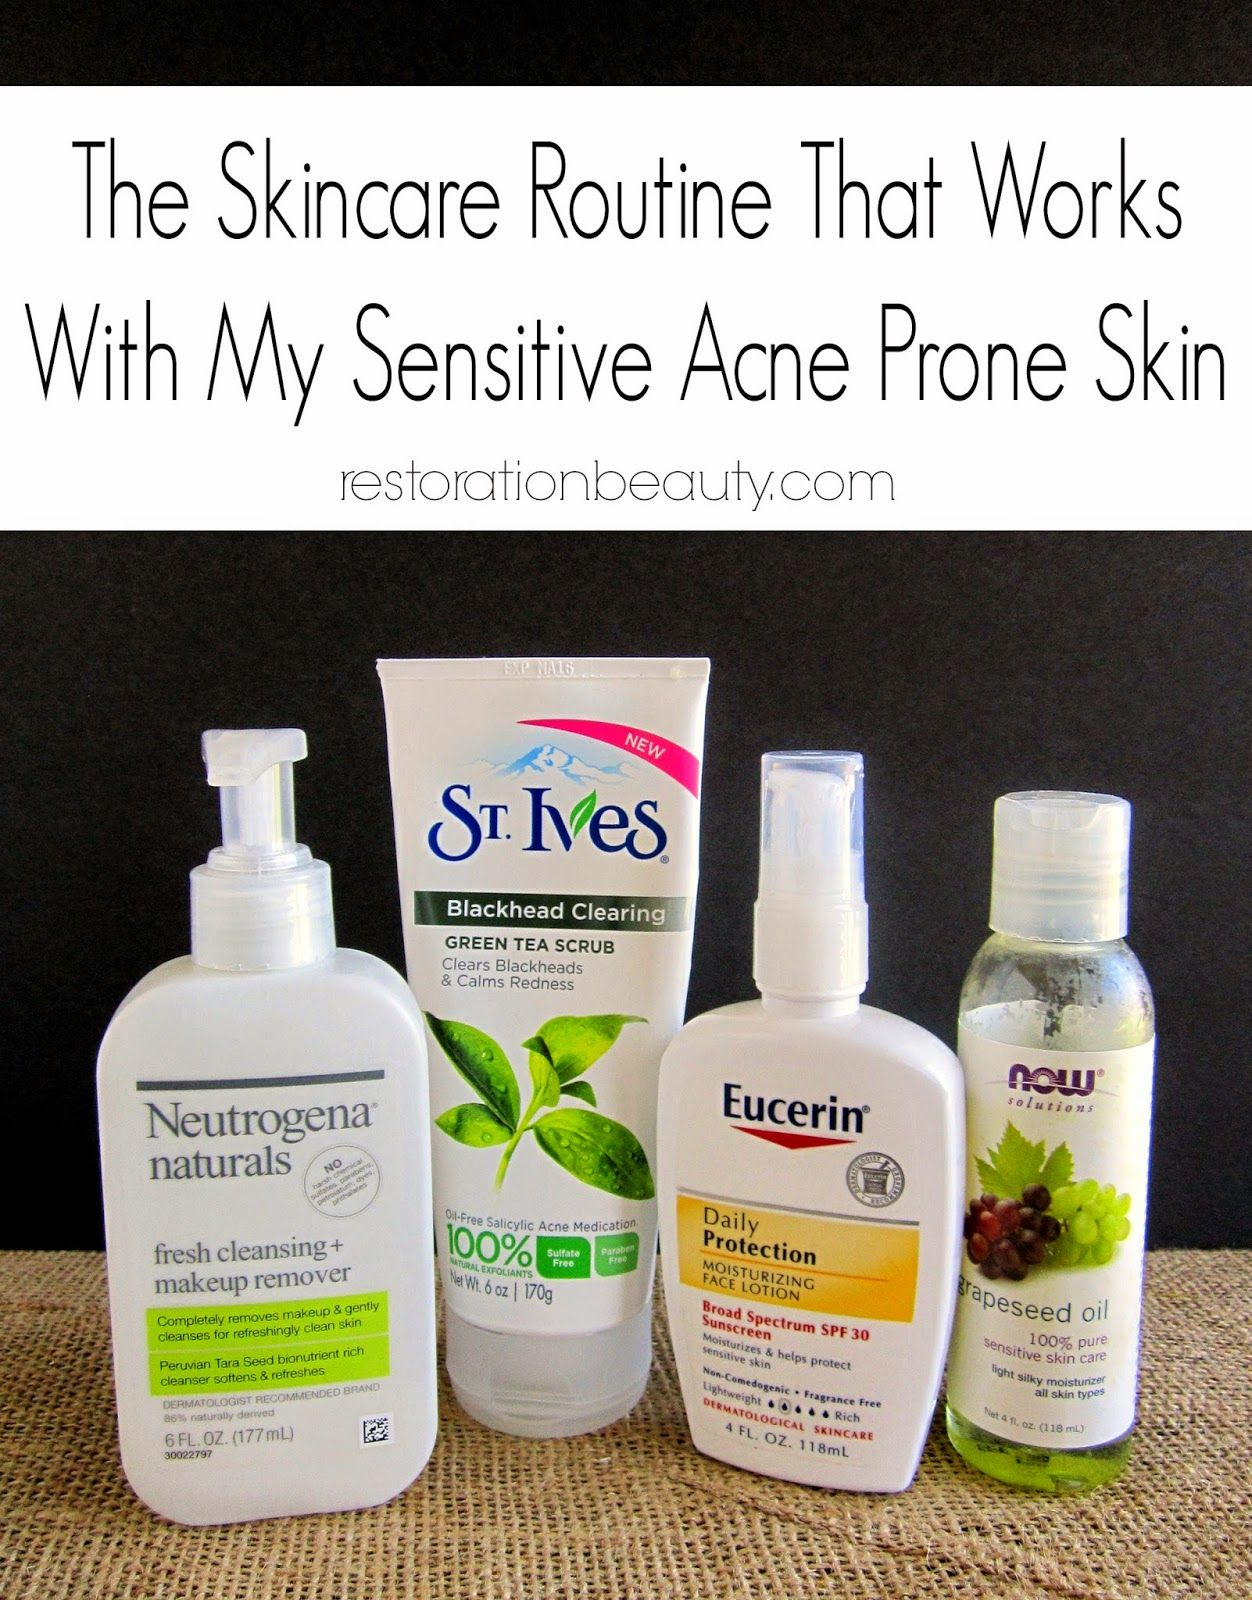 The Skincare Routine That Works With My Sensitive Acne Prone Skin